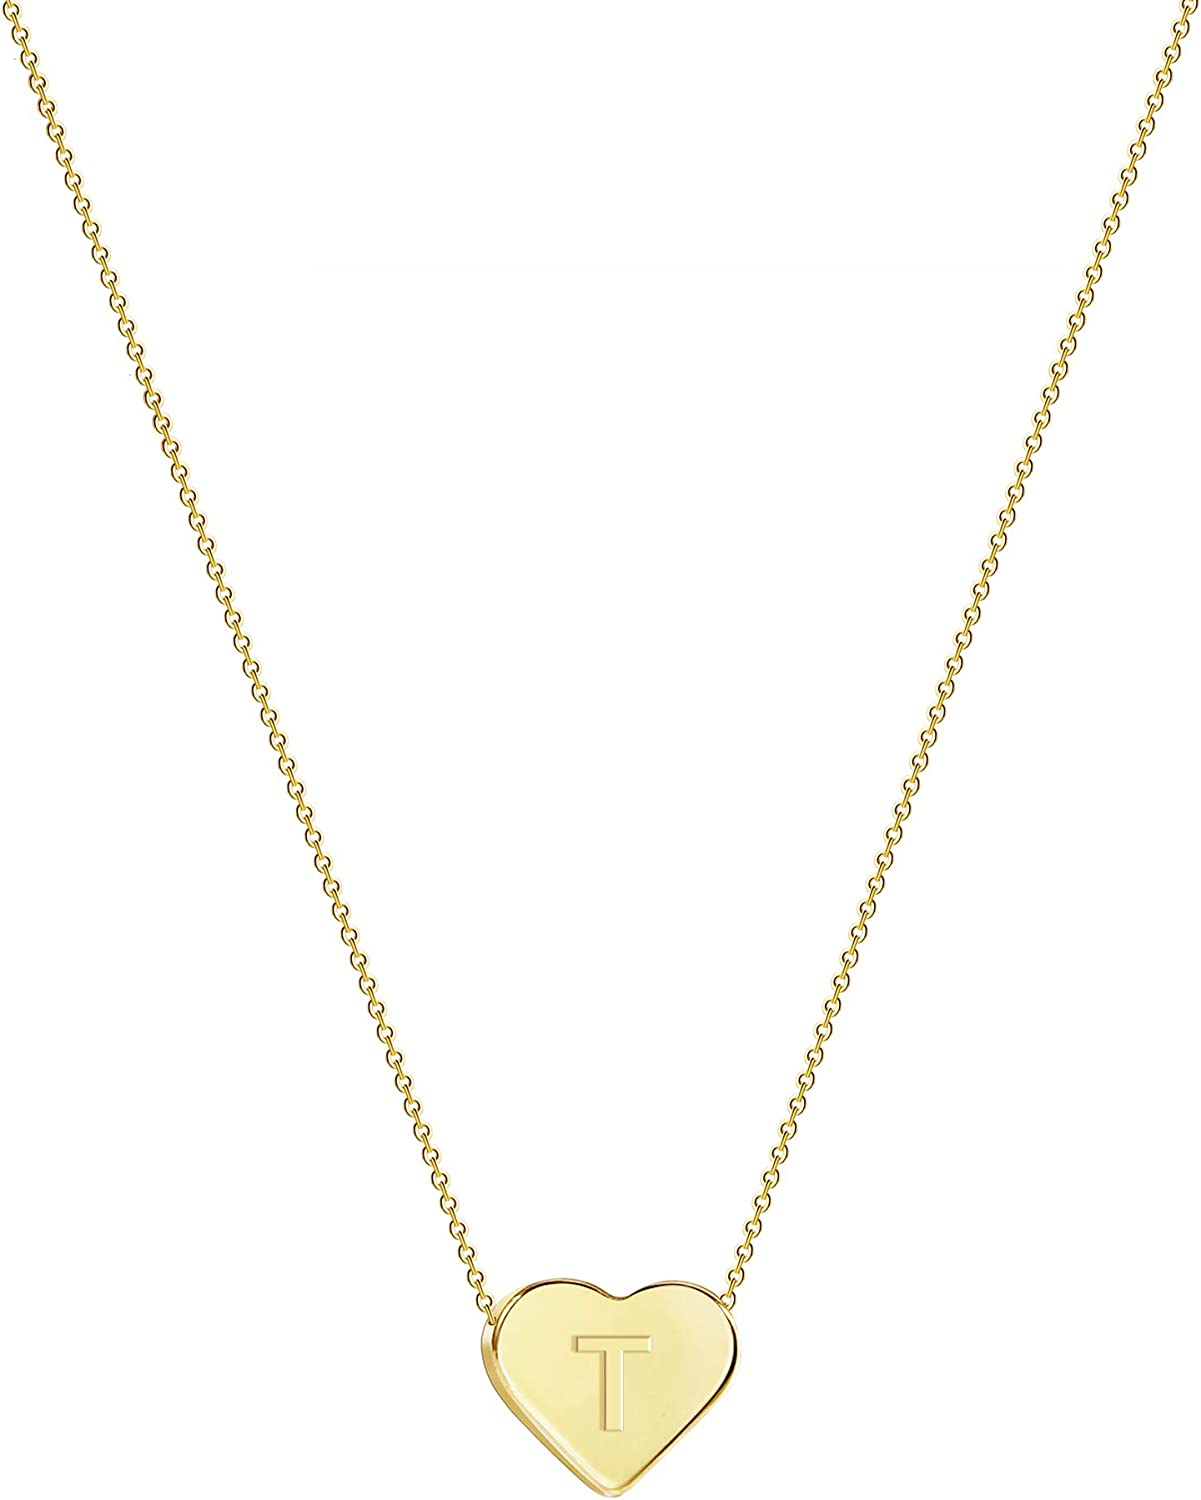 Tewiky High order Tiny Initial Heart Tucson Mall Choker Necklaces Boy's Alphabet Letter